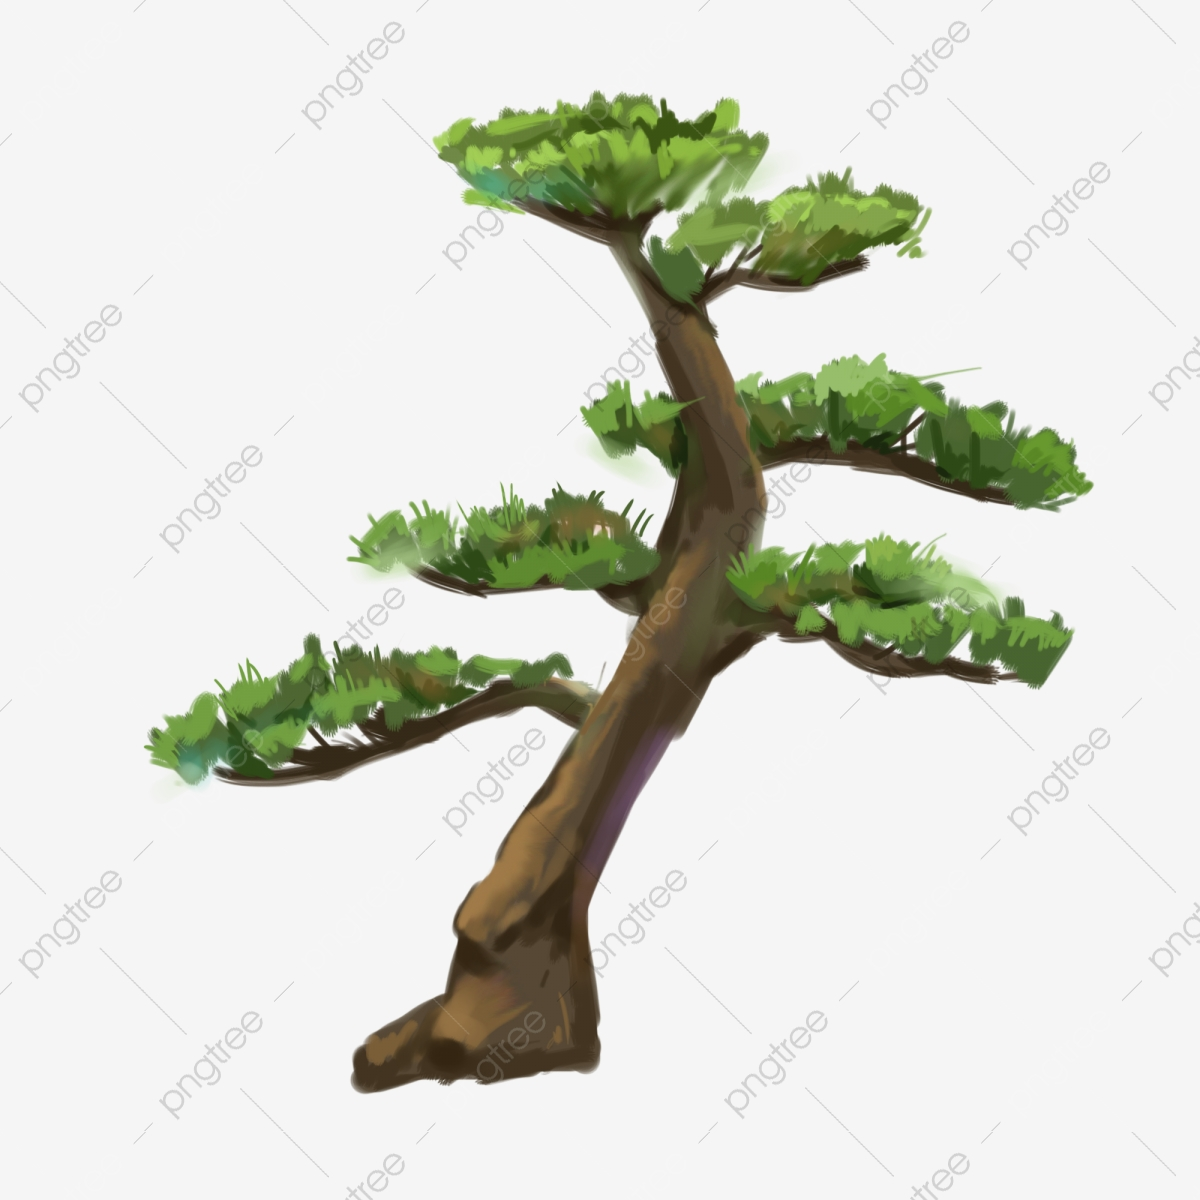 Cartoon Green Pine Tree Illustration Green Leaves Curved Pine Cartoon Pine Png Transparent Clipart Image And Psd File For Free Download